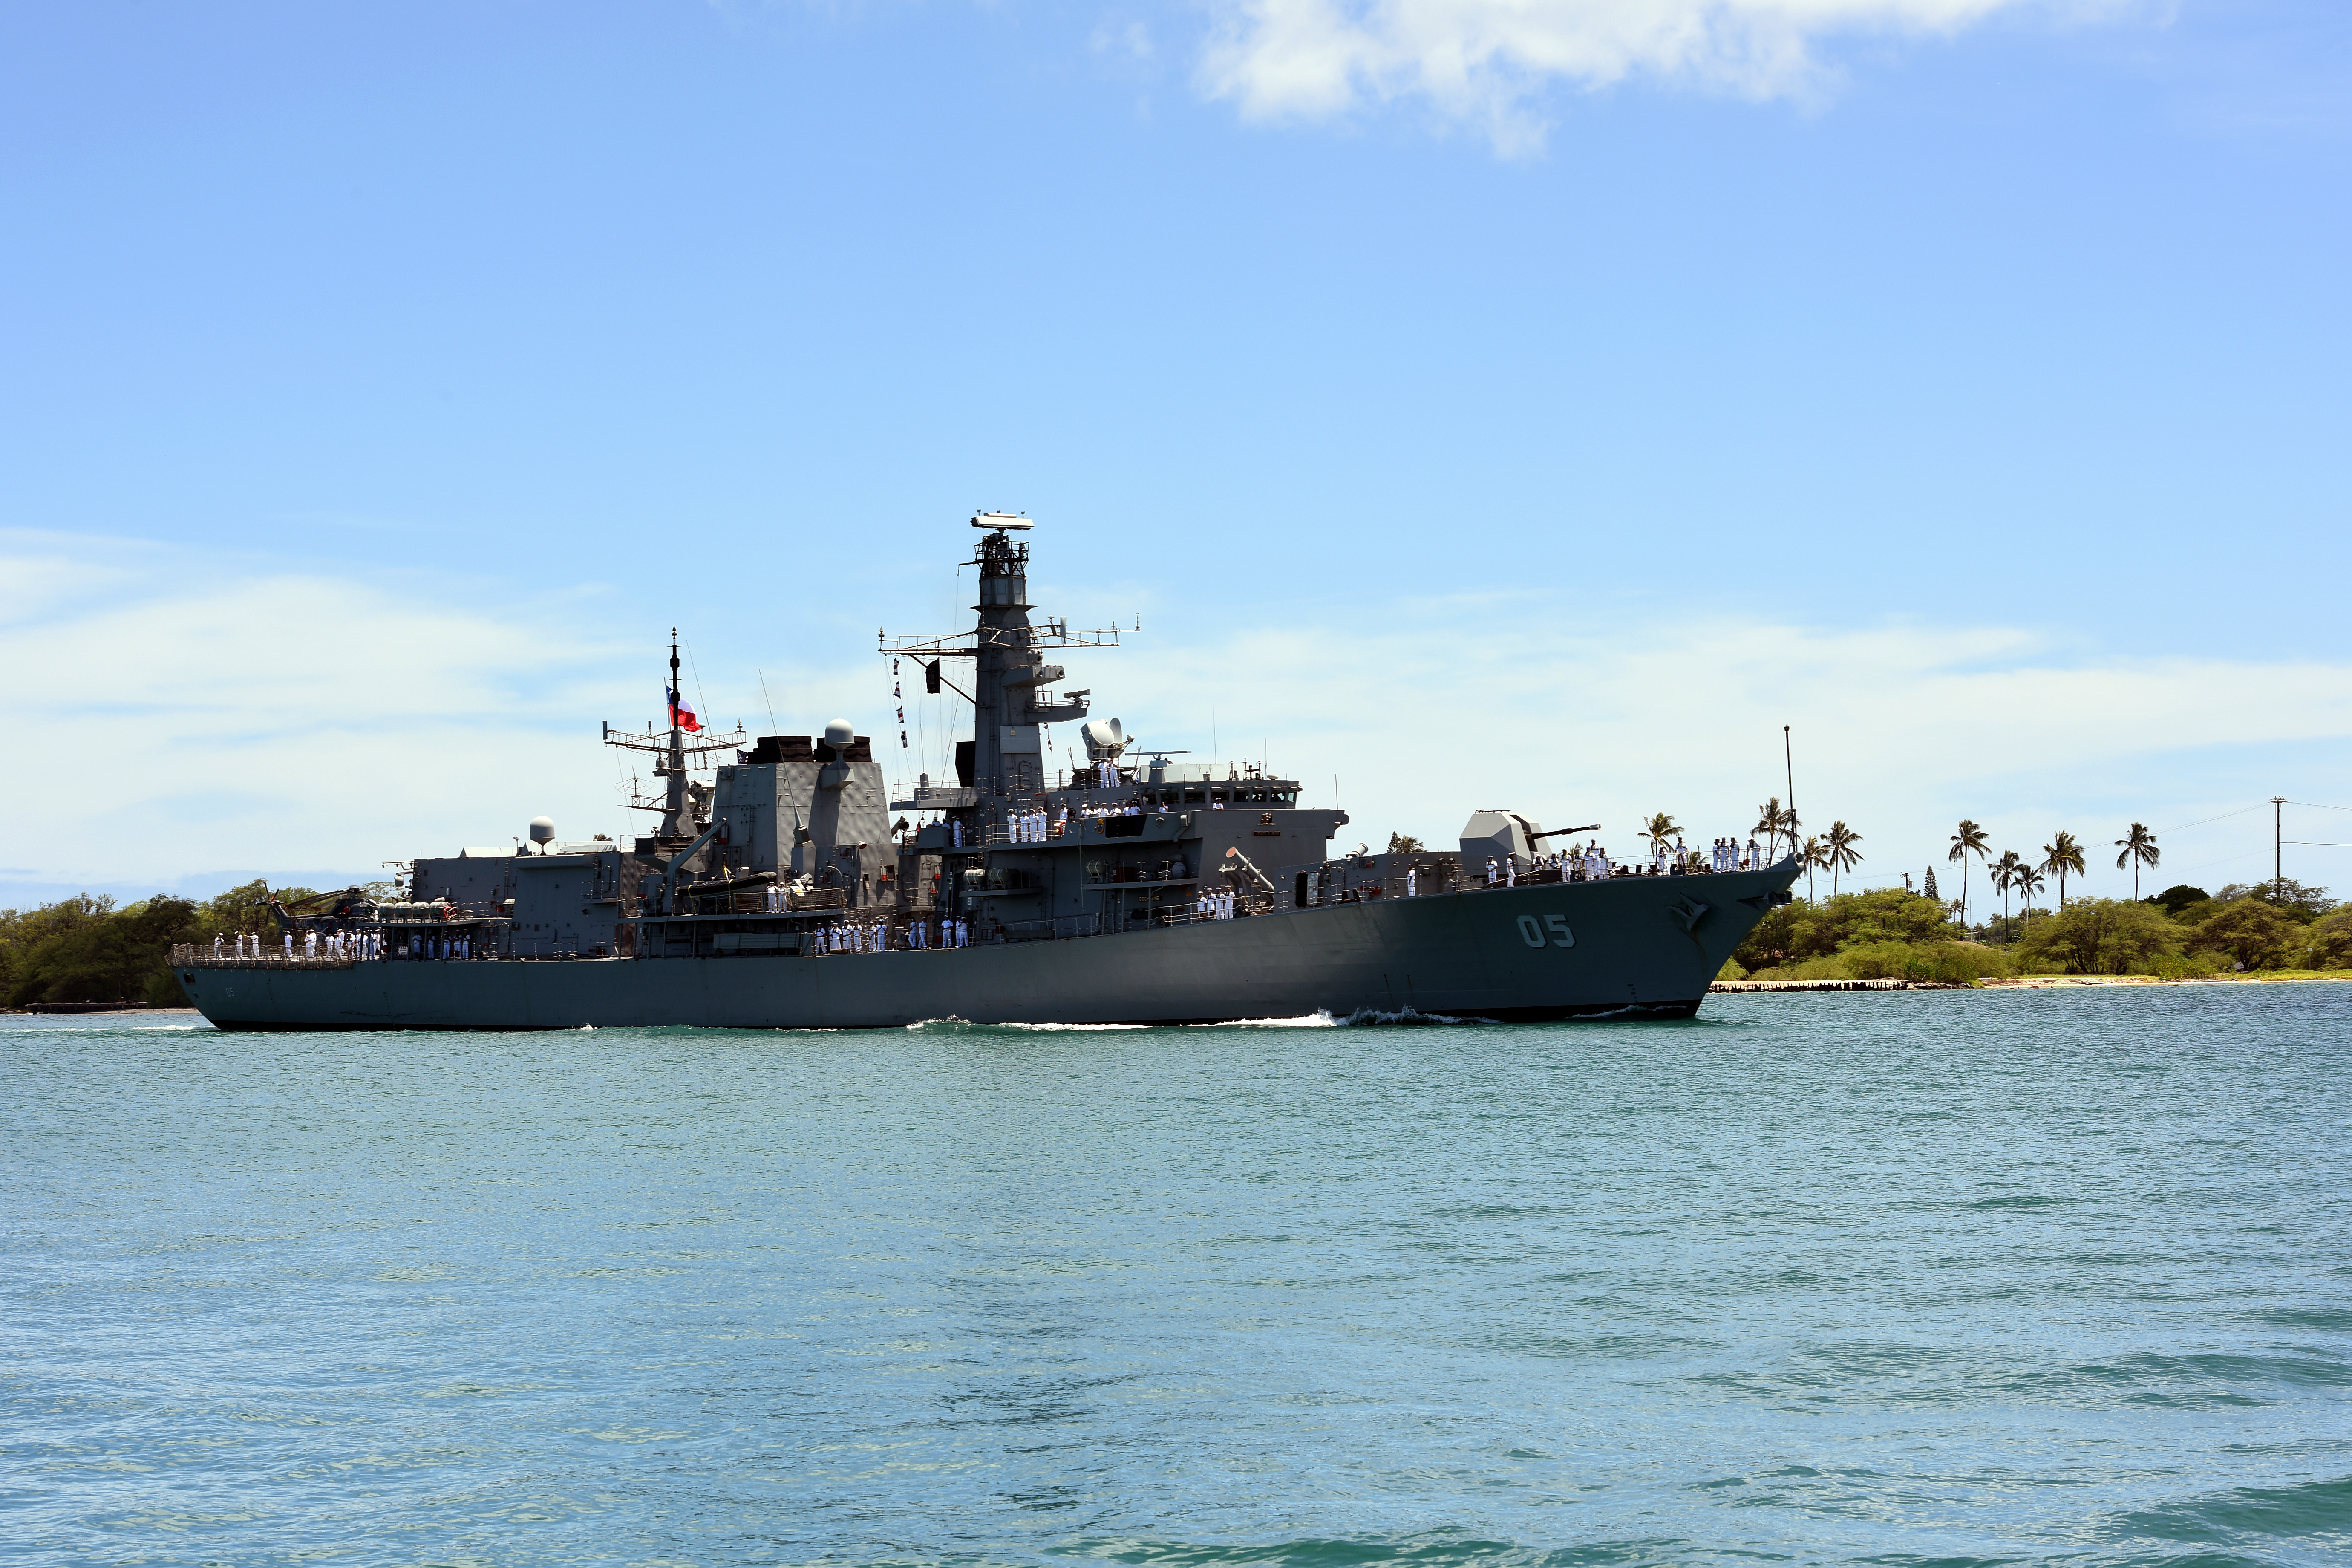 Chilean navy frigate CNS Almirante Cochrane (FF 05) arrives at Joint Base Pearl Harbor-Hickam for Rim of the Pacific (RIMPAC) 2016 in late June. US Navy Photo